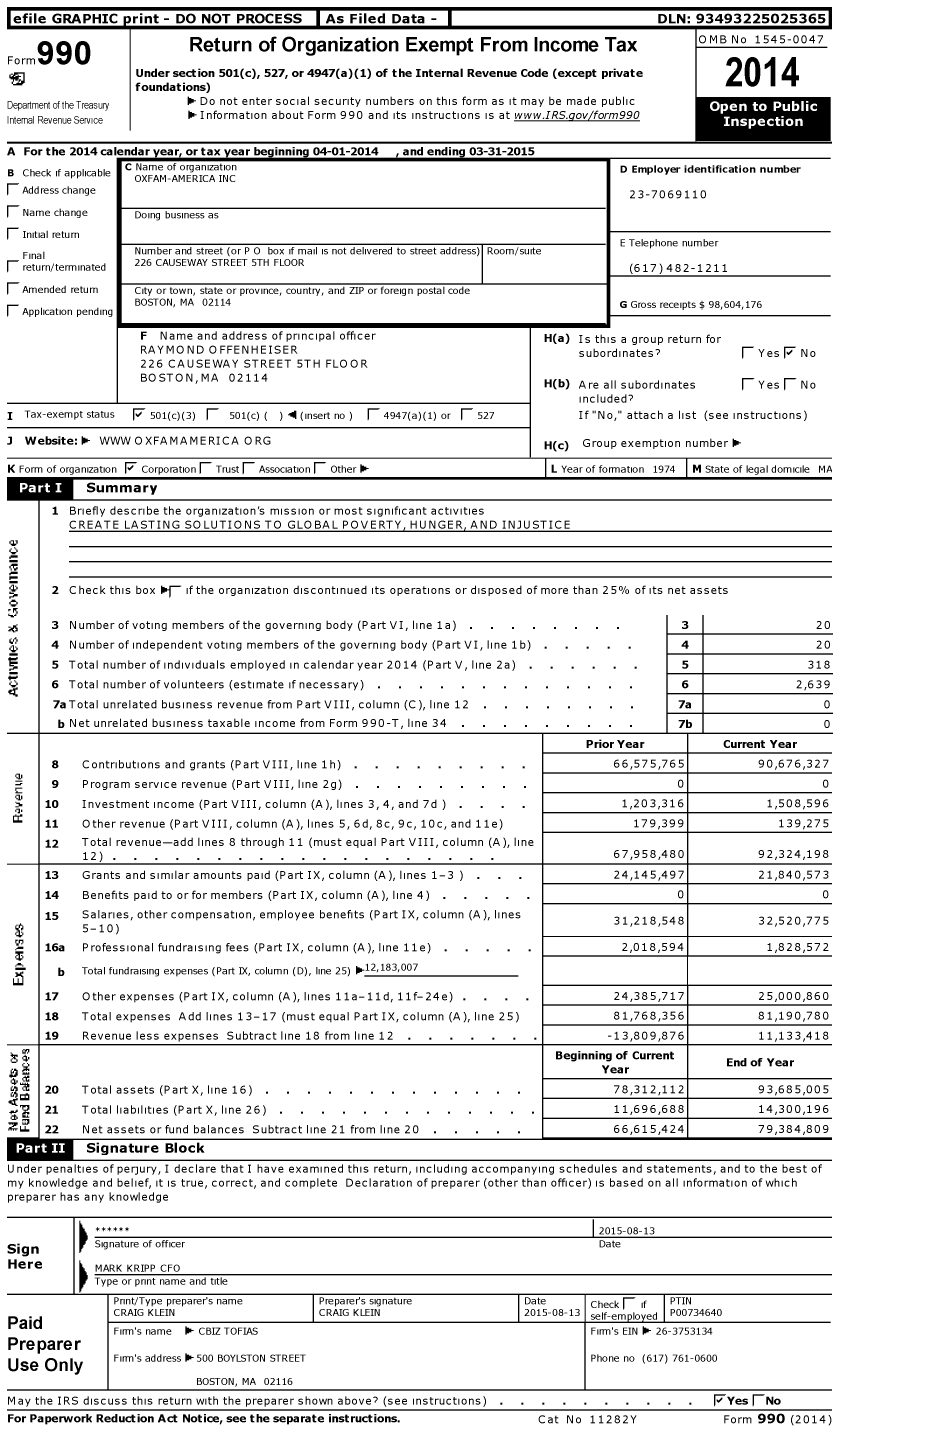 Image of first page of 2014 Form 990 for Oxfam-America